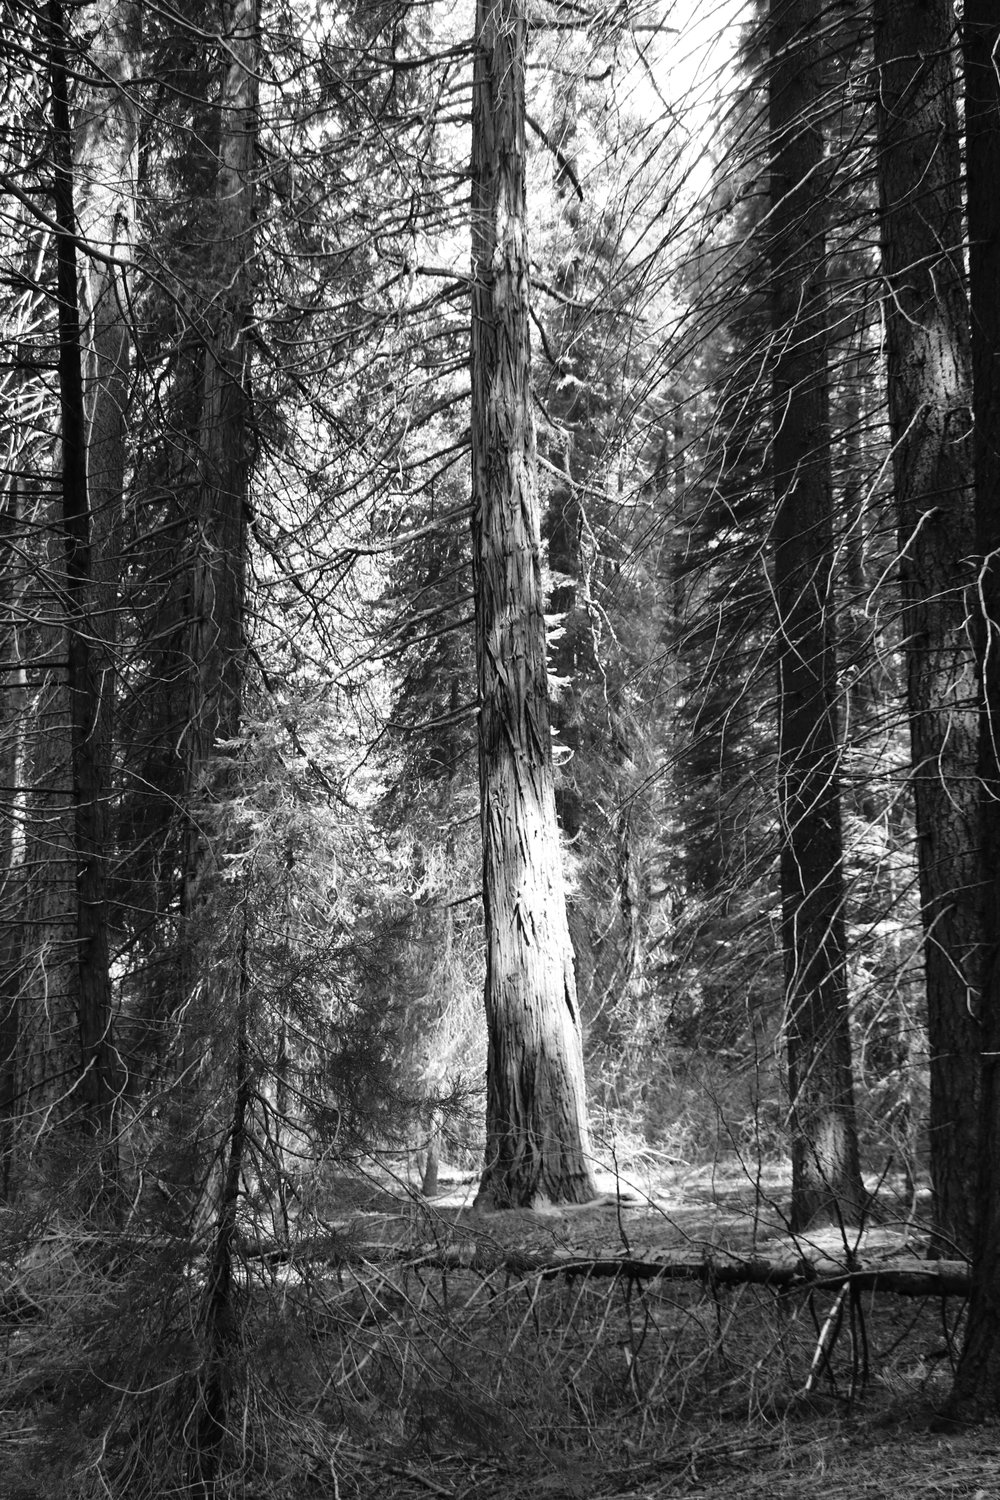 Filtered Light - Sequoia